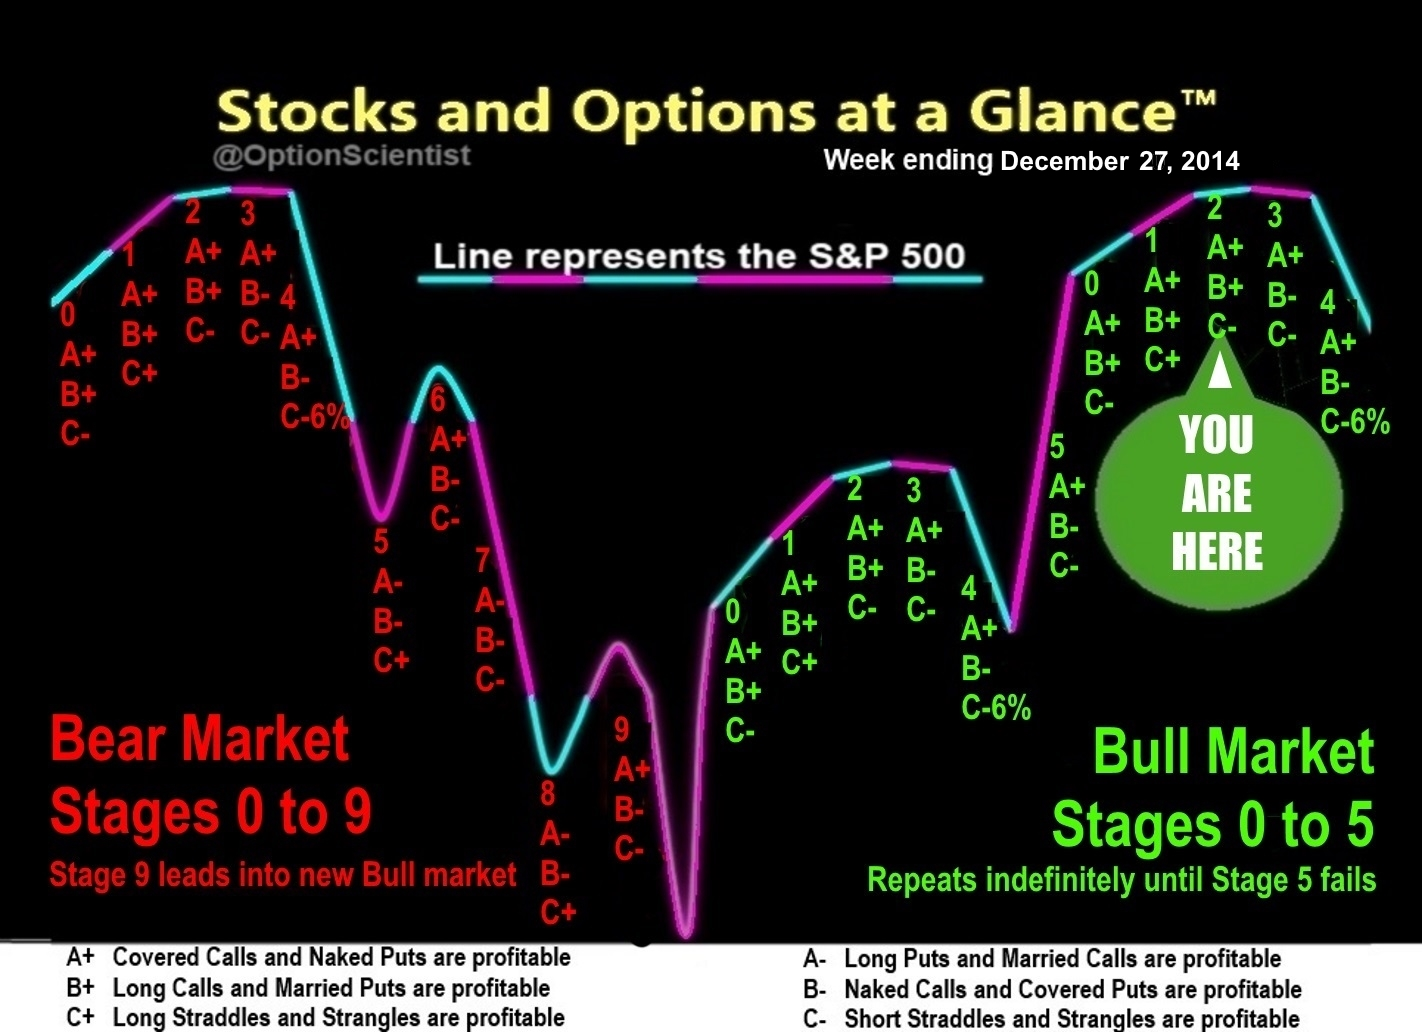 Stocks and Options at a Glance 12-27-14